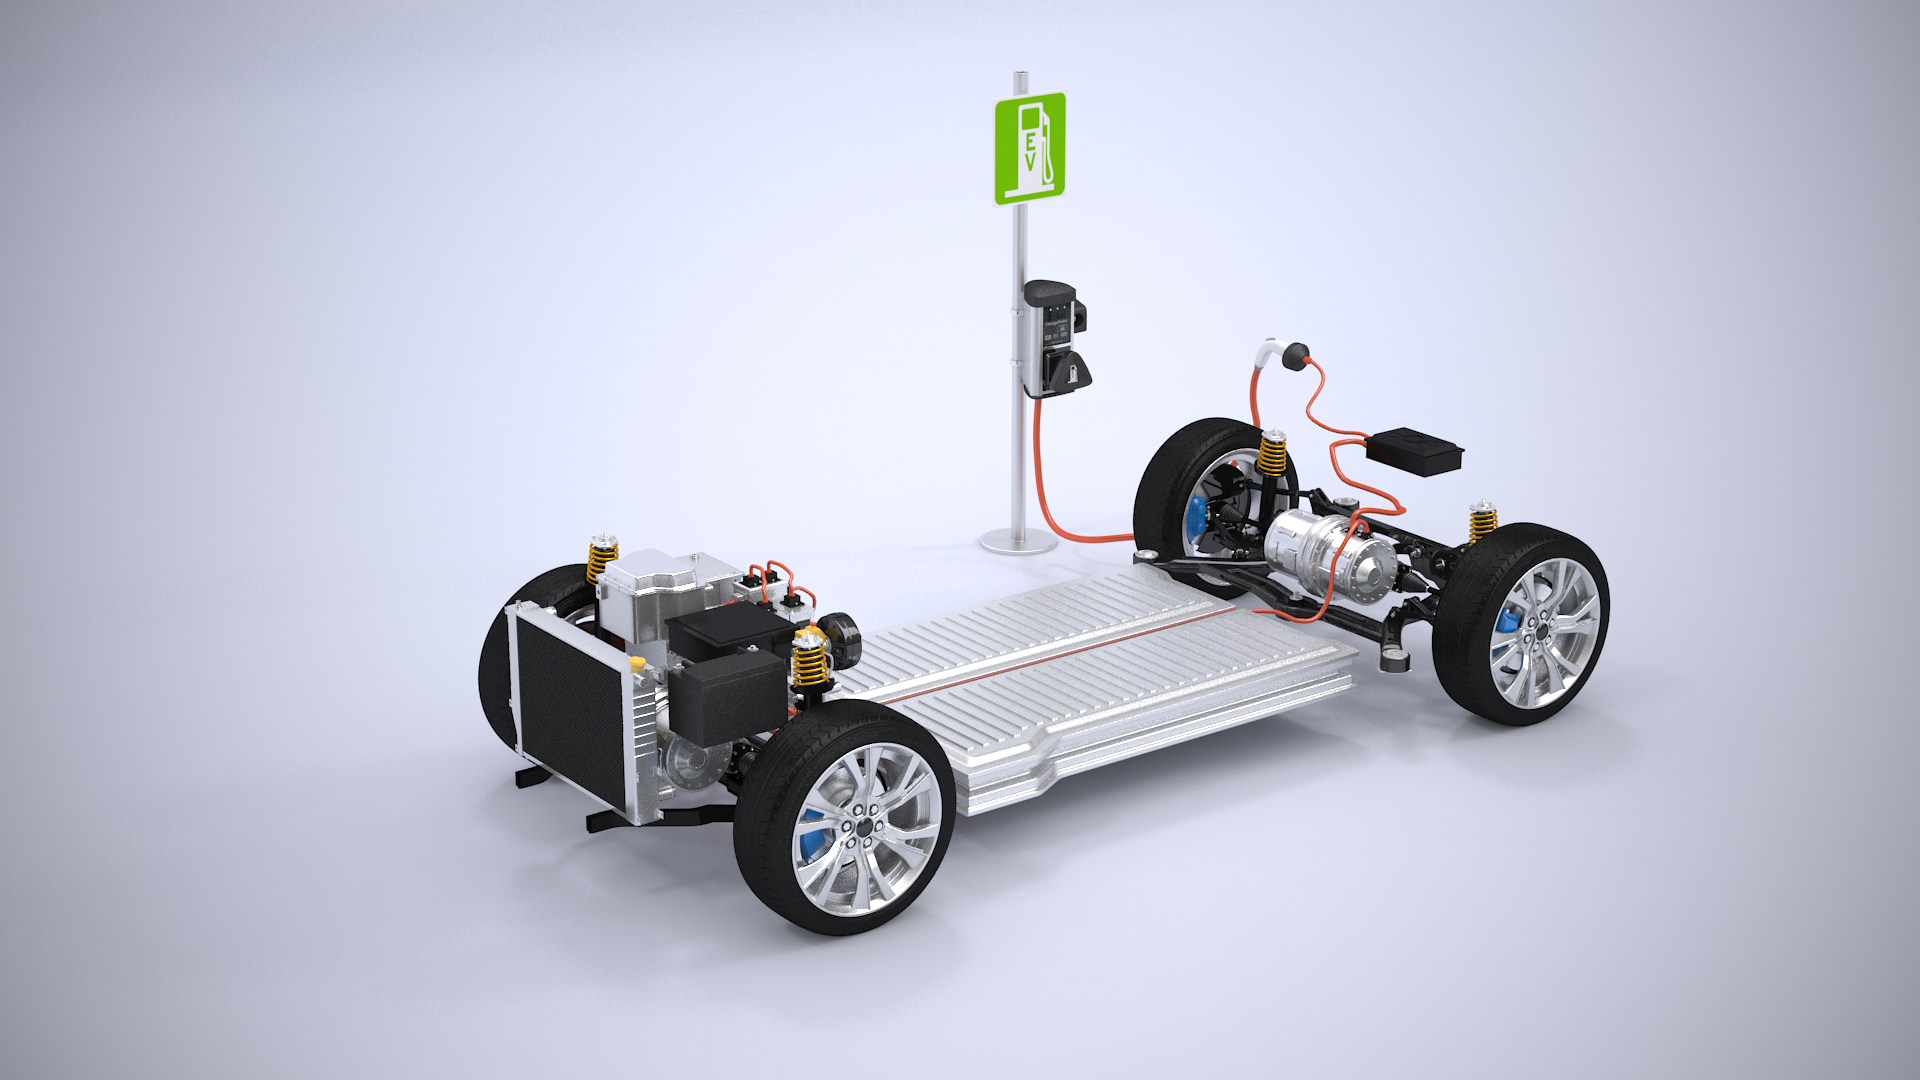 Awd Electric Car >> Electric Awd Vehicle Chassis Chargepoint